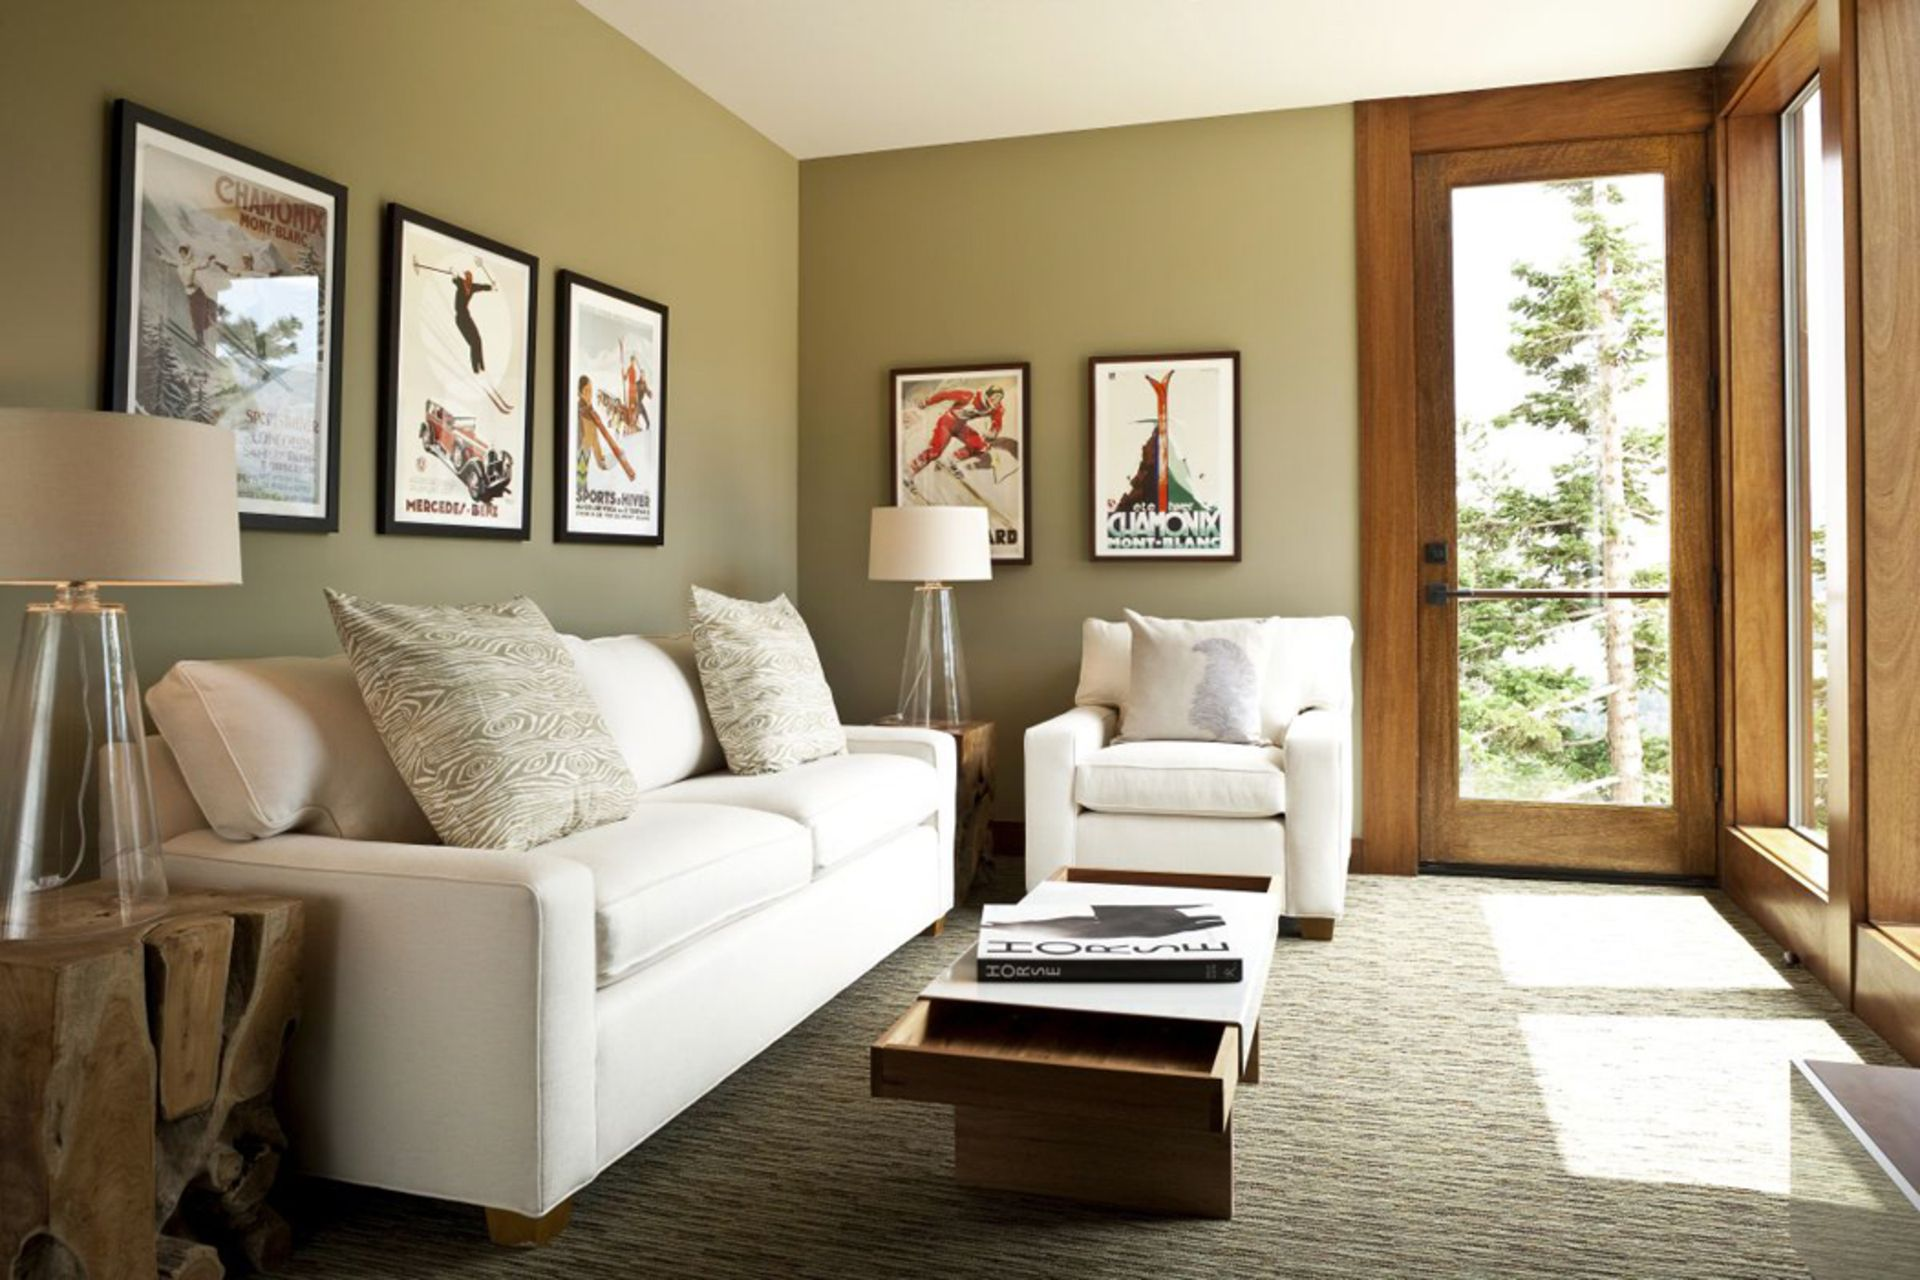 Living Room Living Room Design Ideas Pinterest 1000 images about home living room on pinterest mirror walls small designs and tv entertainment un